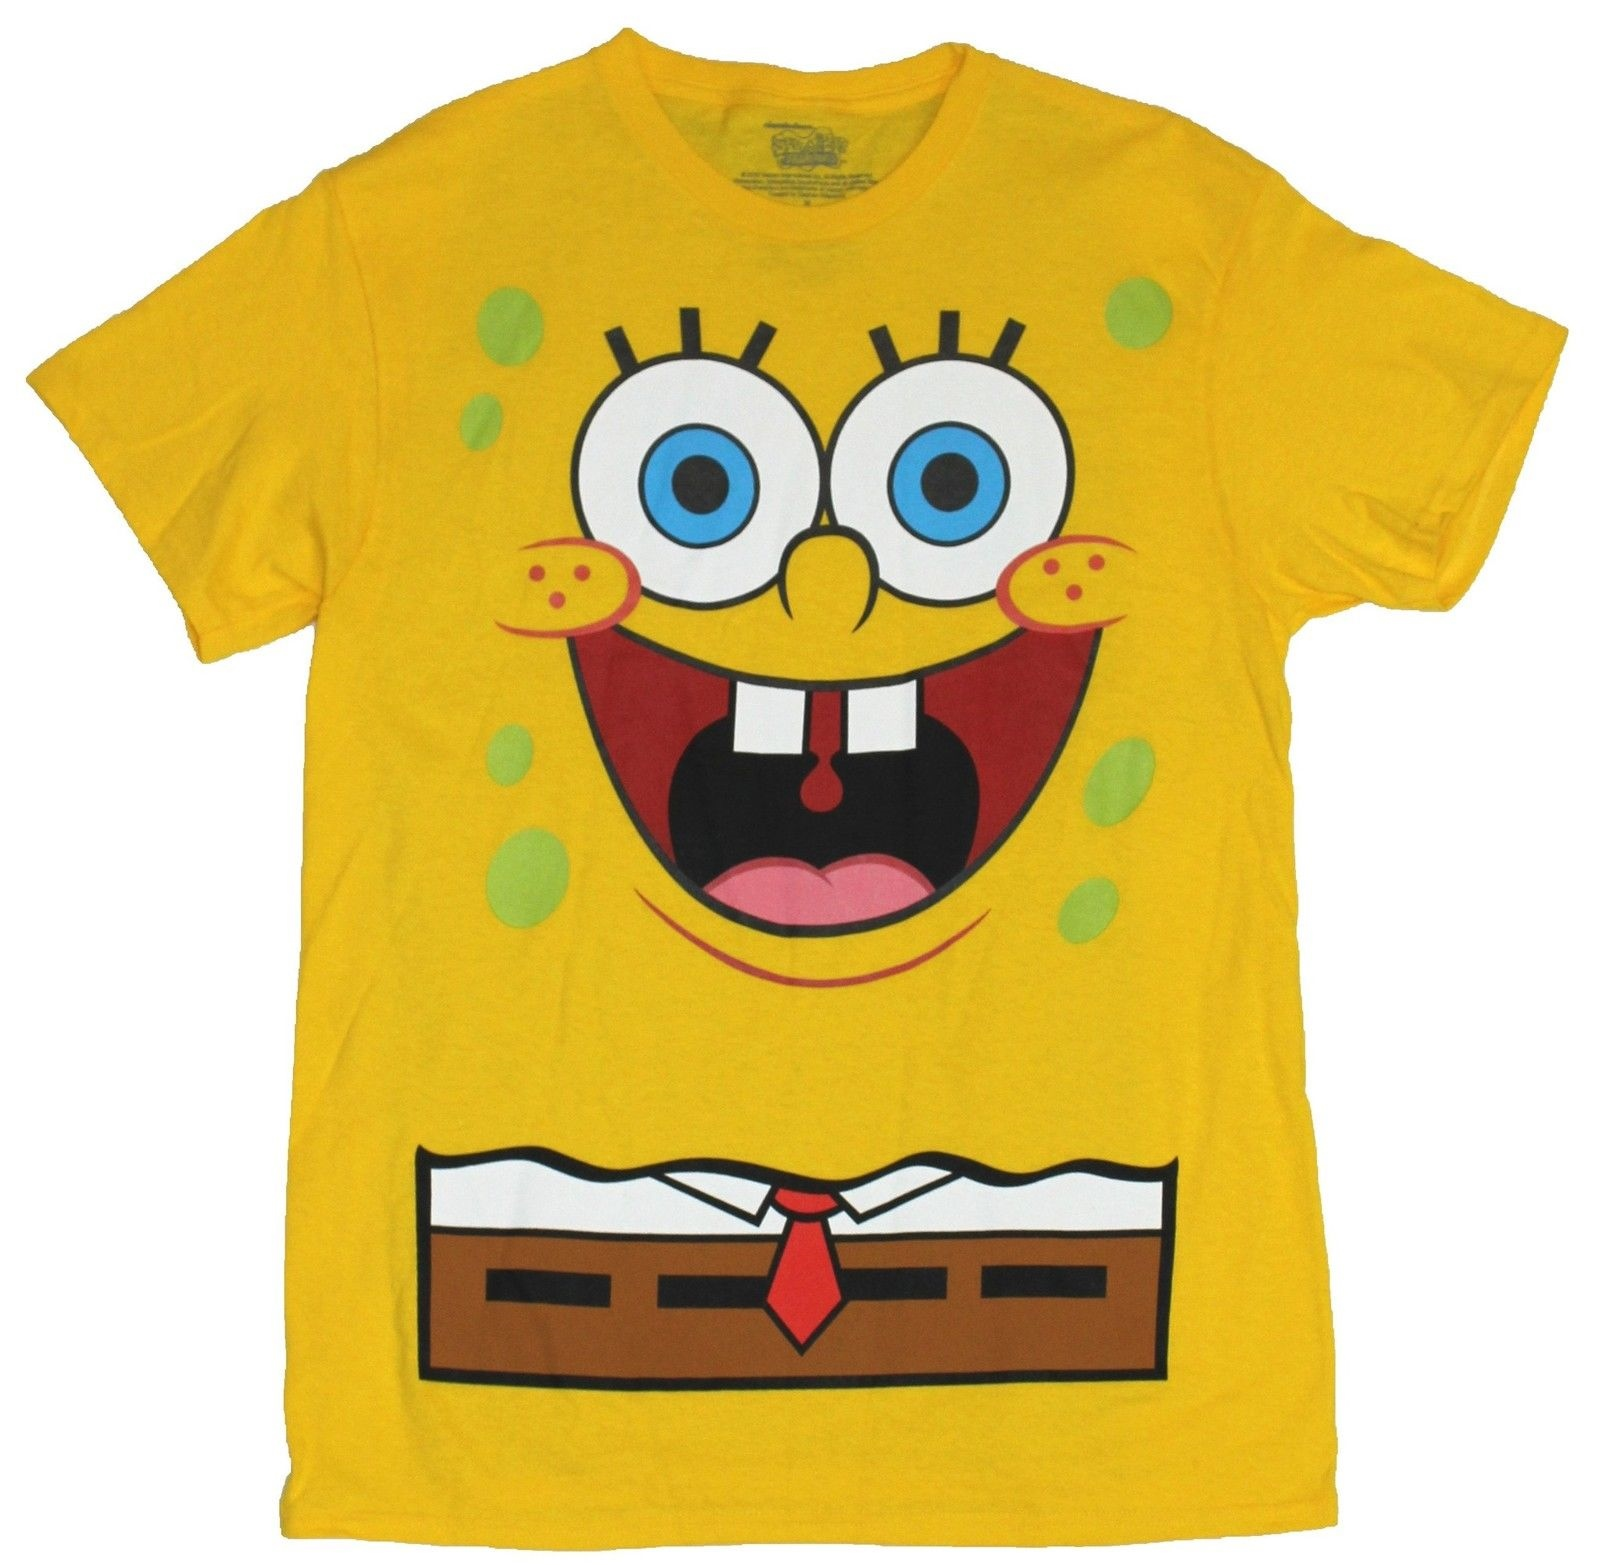 men/'s XL spongebob loose fit t-shirt spongebob square pants yellow top fun XL